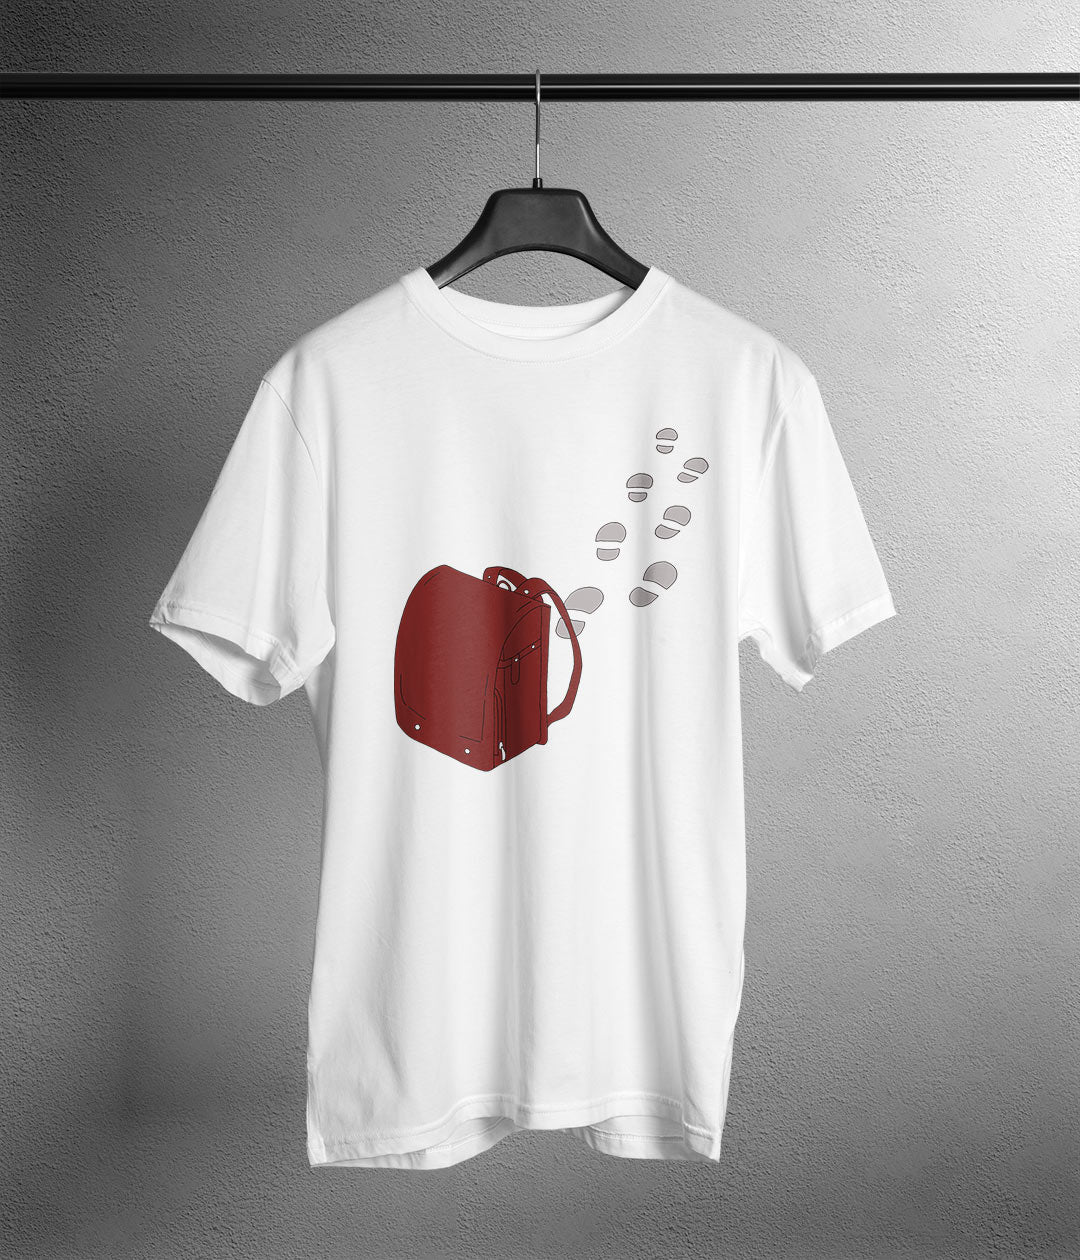 Red anime backpack on white t shirt with footsteps